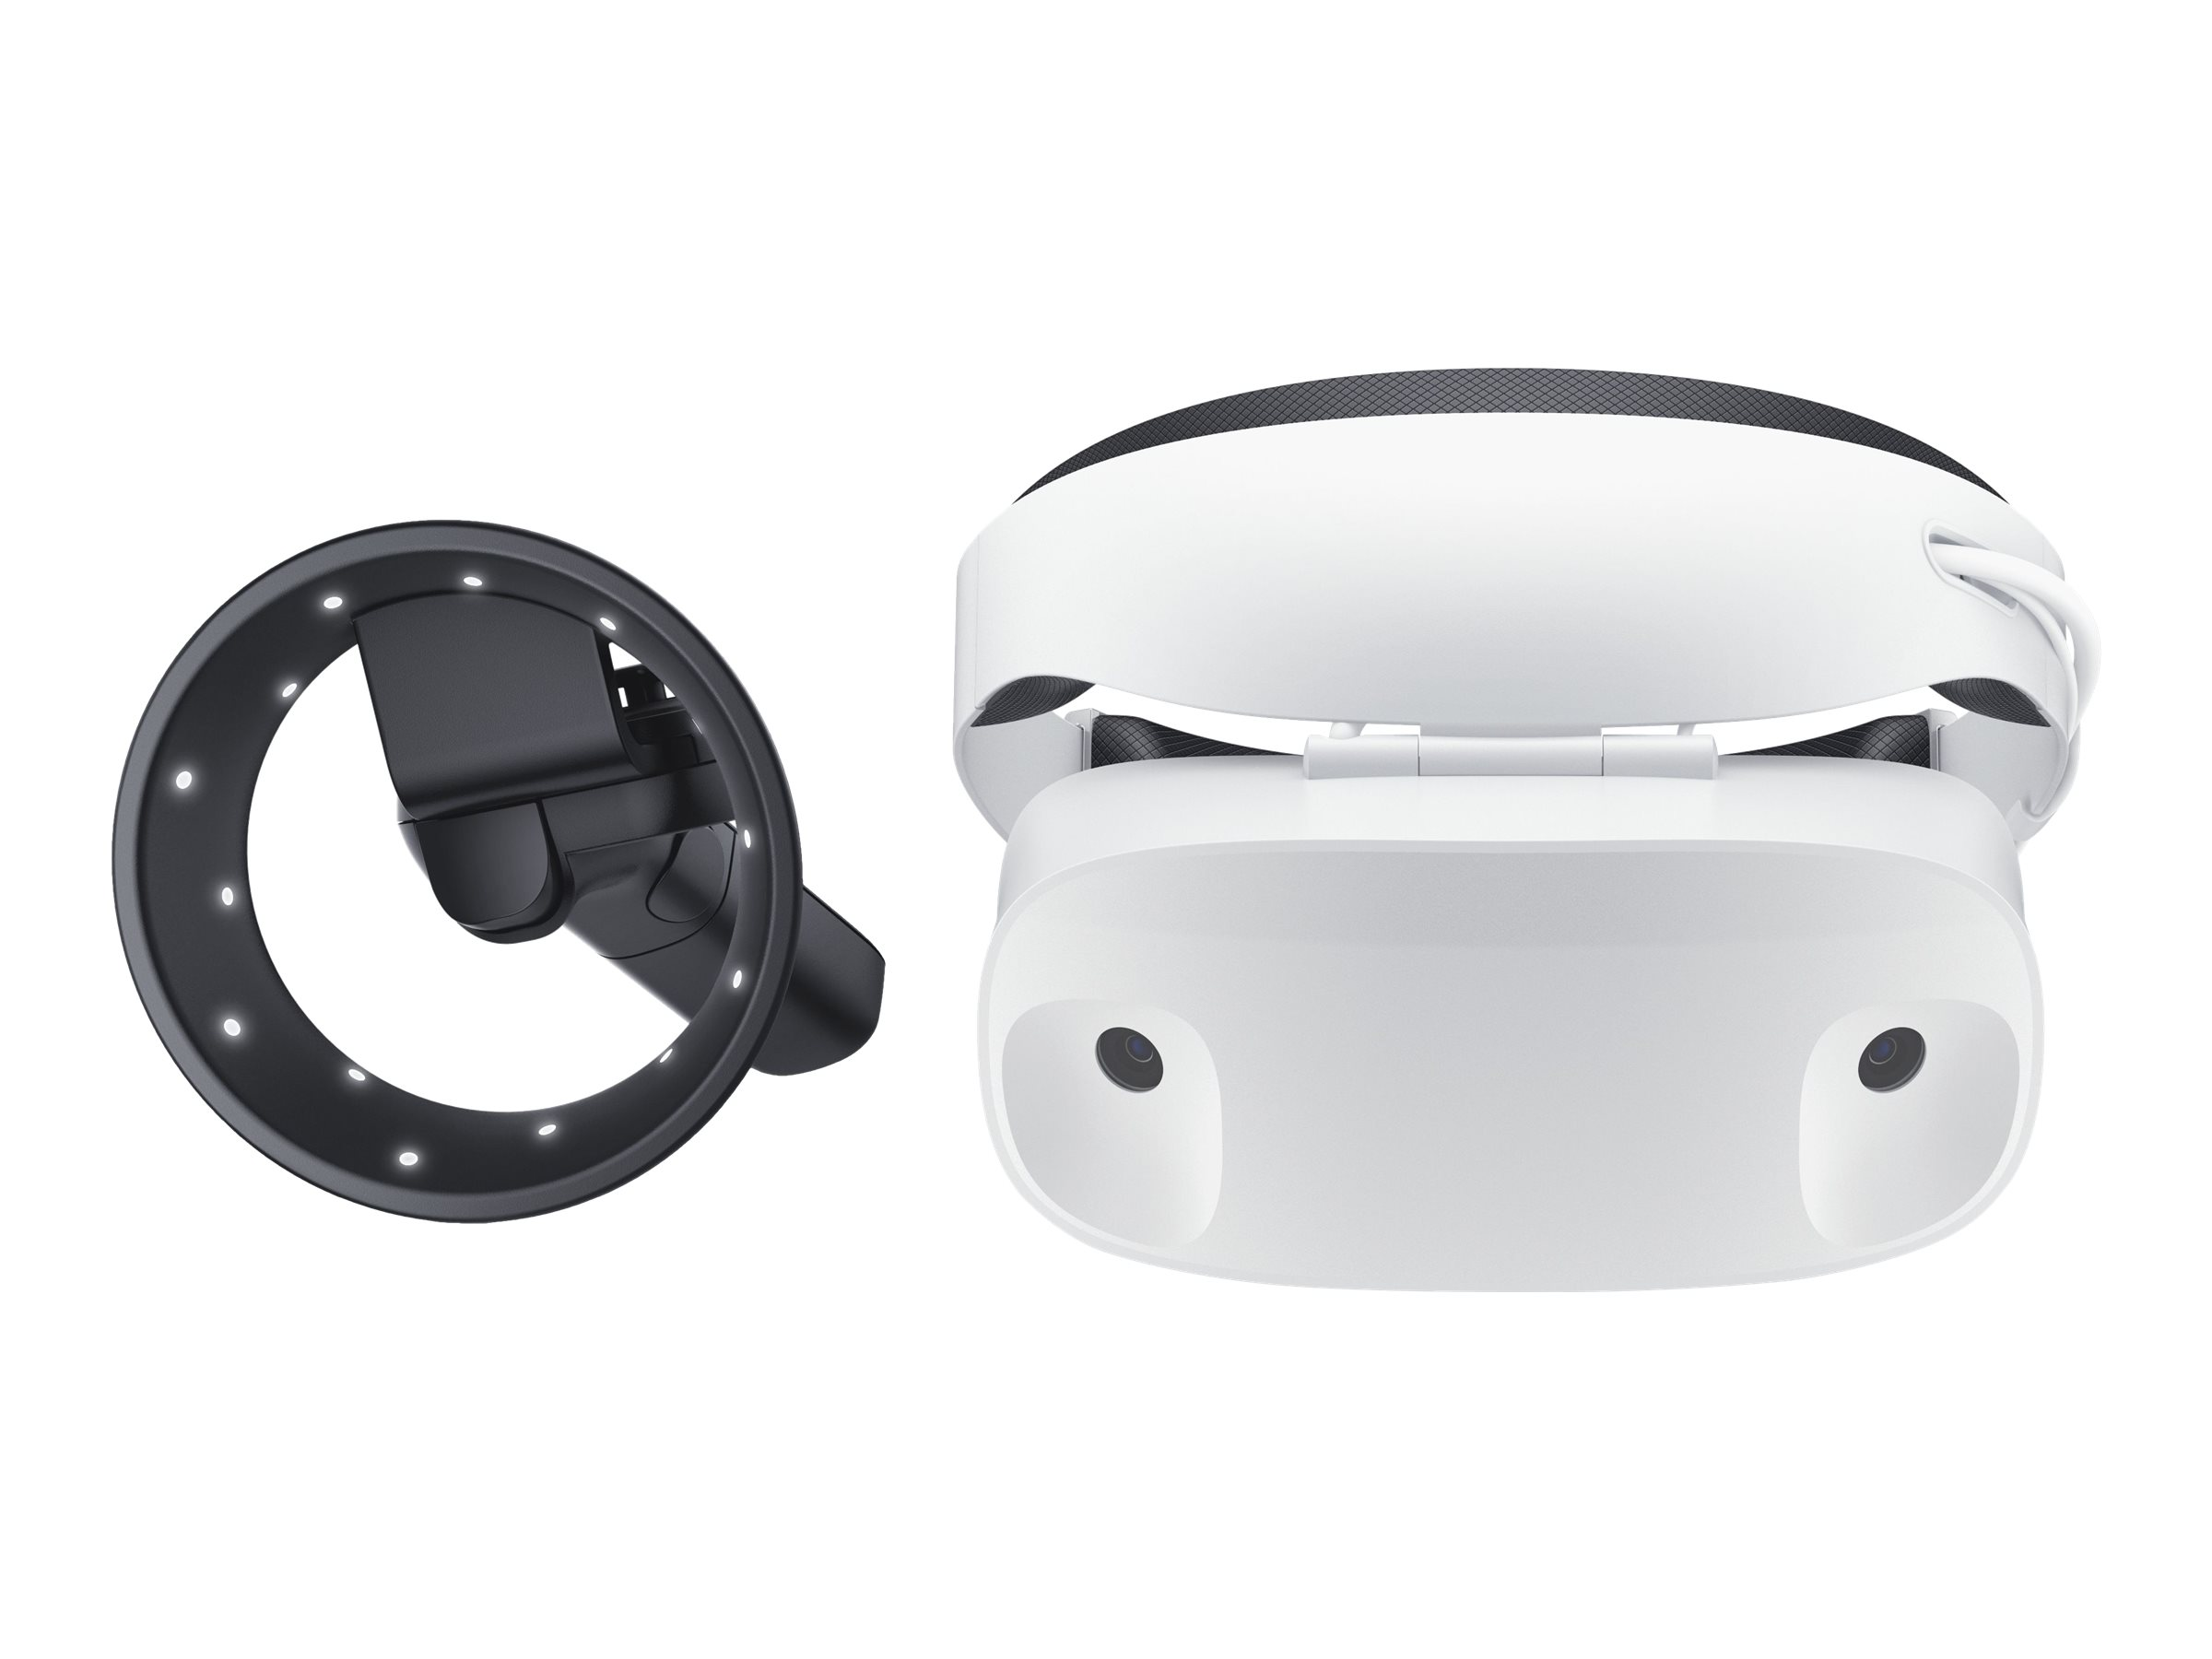 Dell Visor with Controllers - Virtual-Reality-Headset - 7.3 cm (2.89